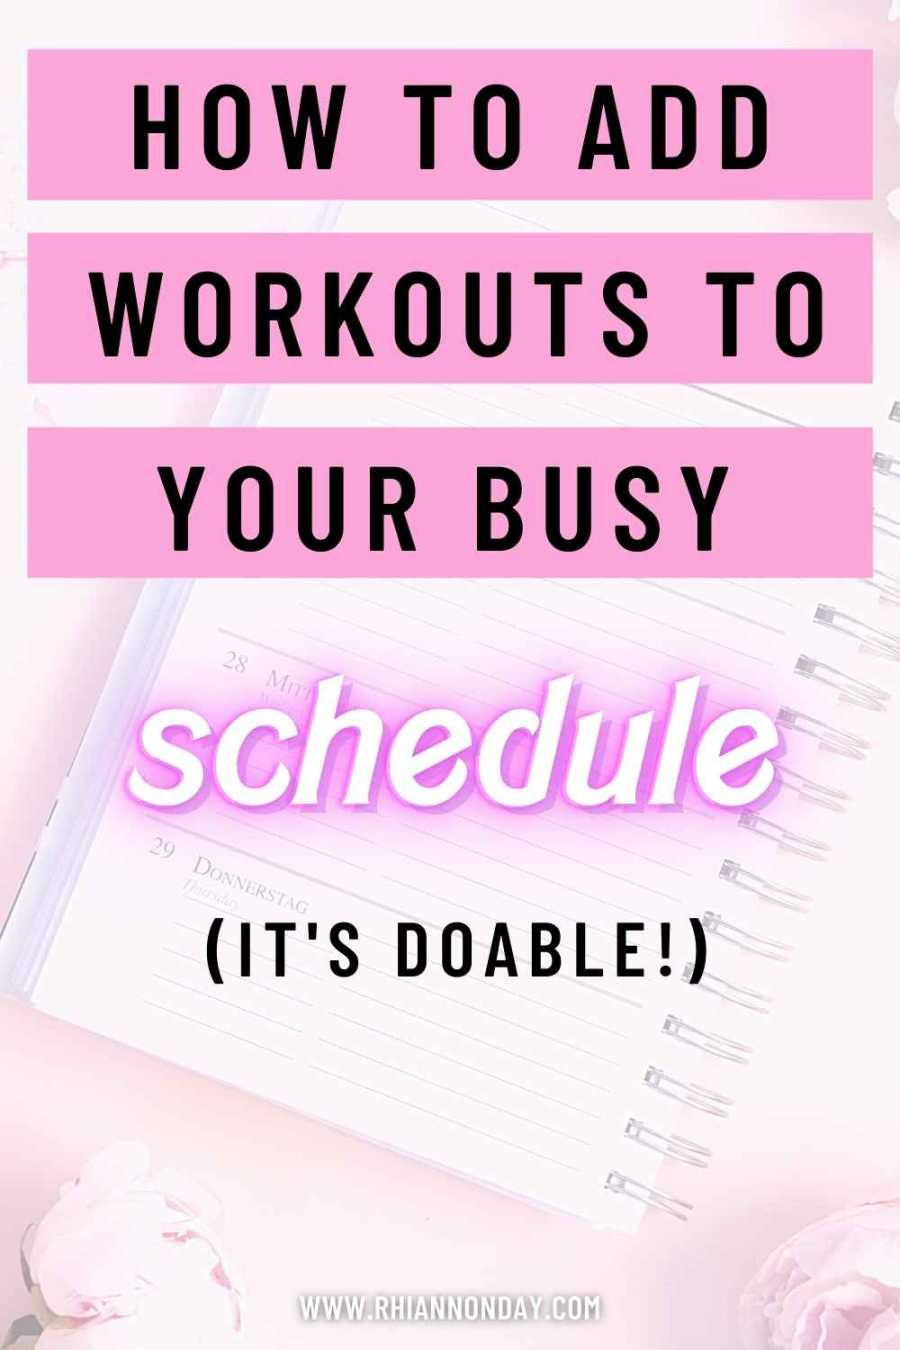 So, you want to work out but you can't find the time?  Here are some ways to schedule weekly workouts - no matter how busy you are!